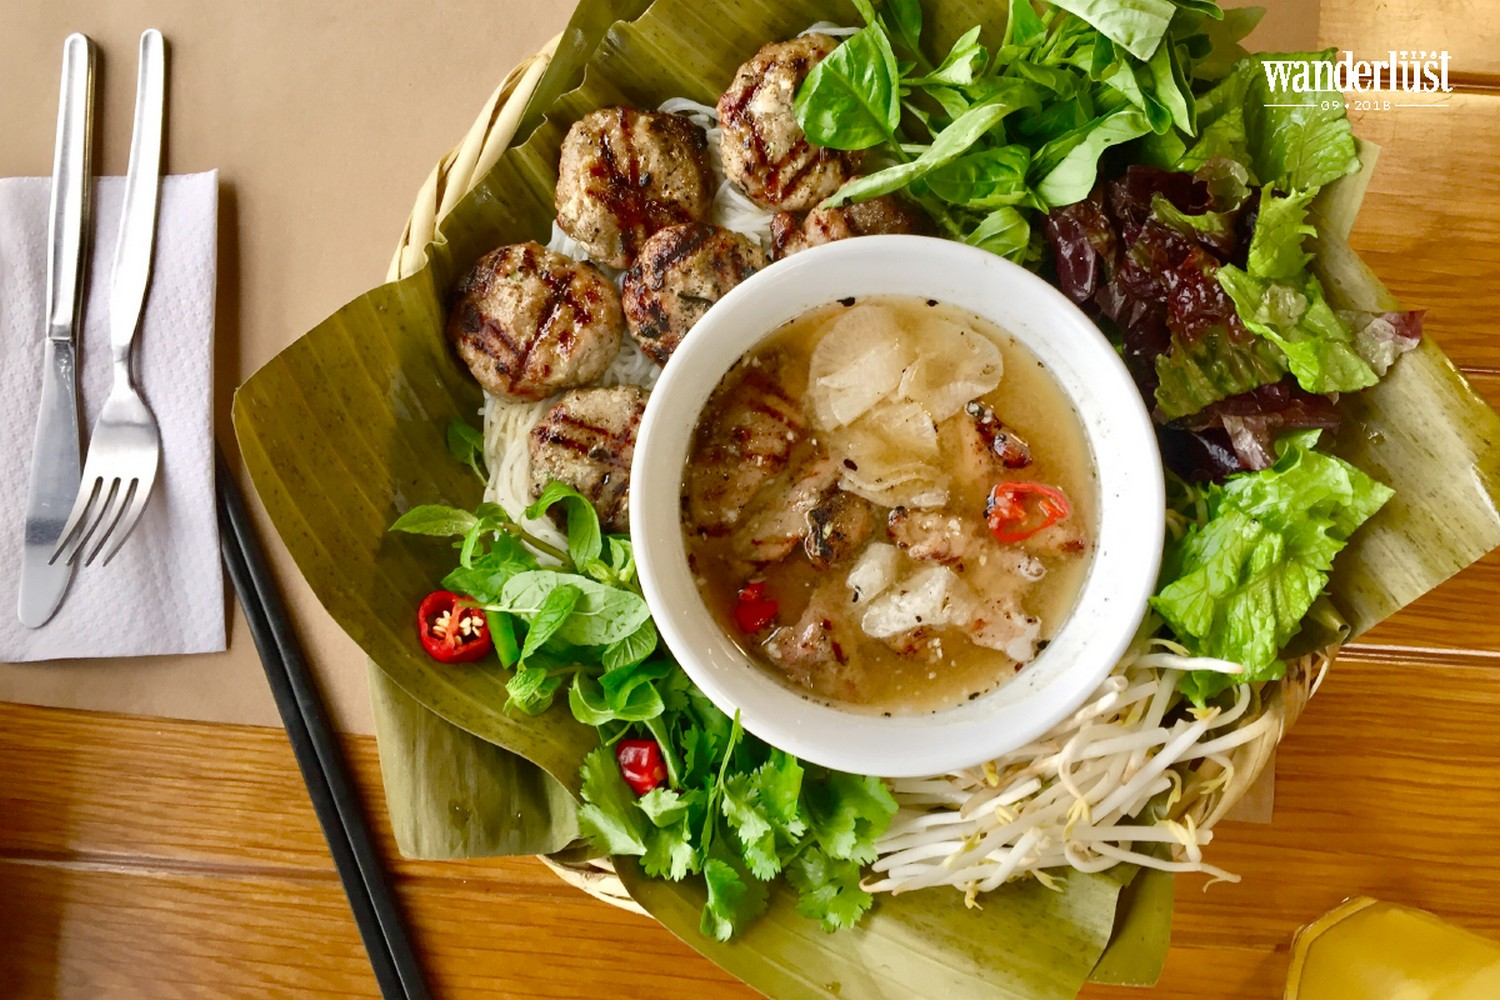 Wanderlust Tips Magazine | Explore street food from Northern to Southern VietNam